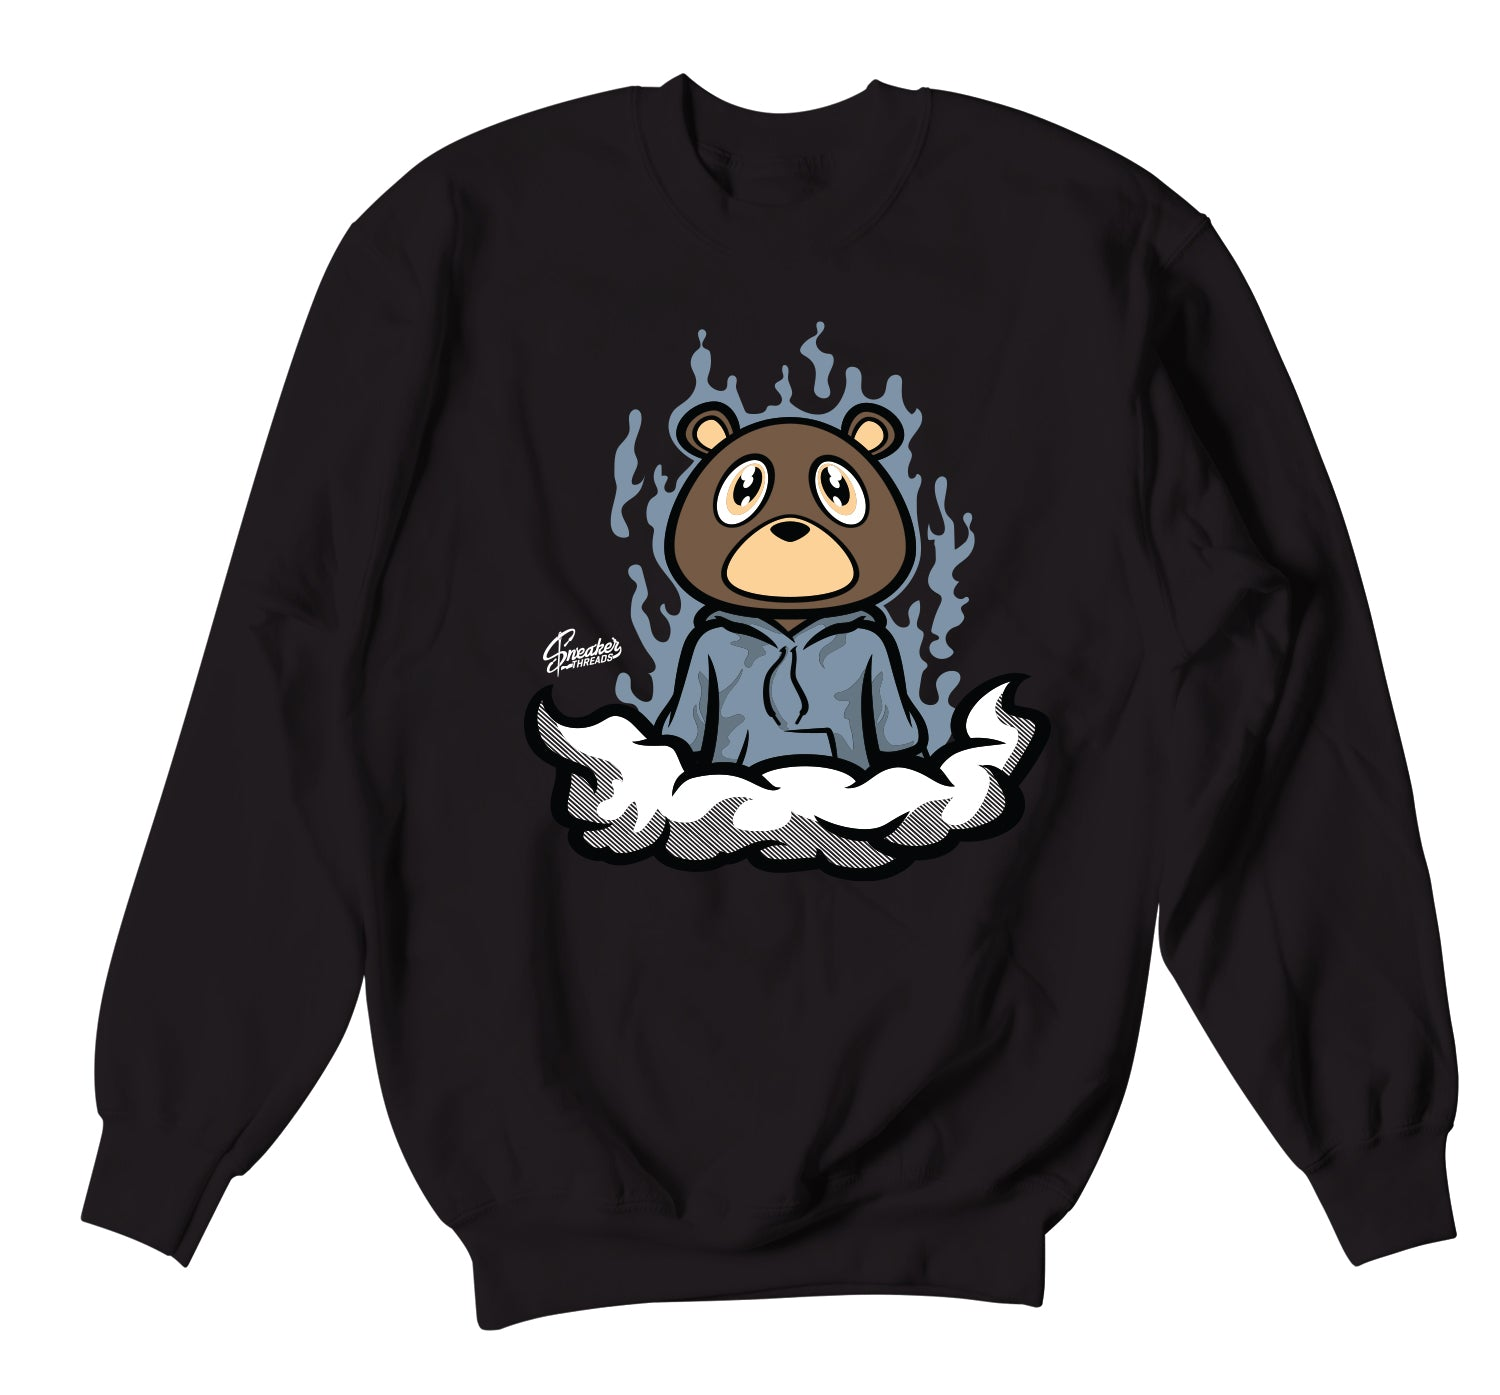 Yeezy Ash Blue 350 Sweater - Fly Bear - Black